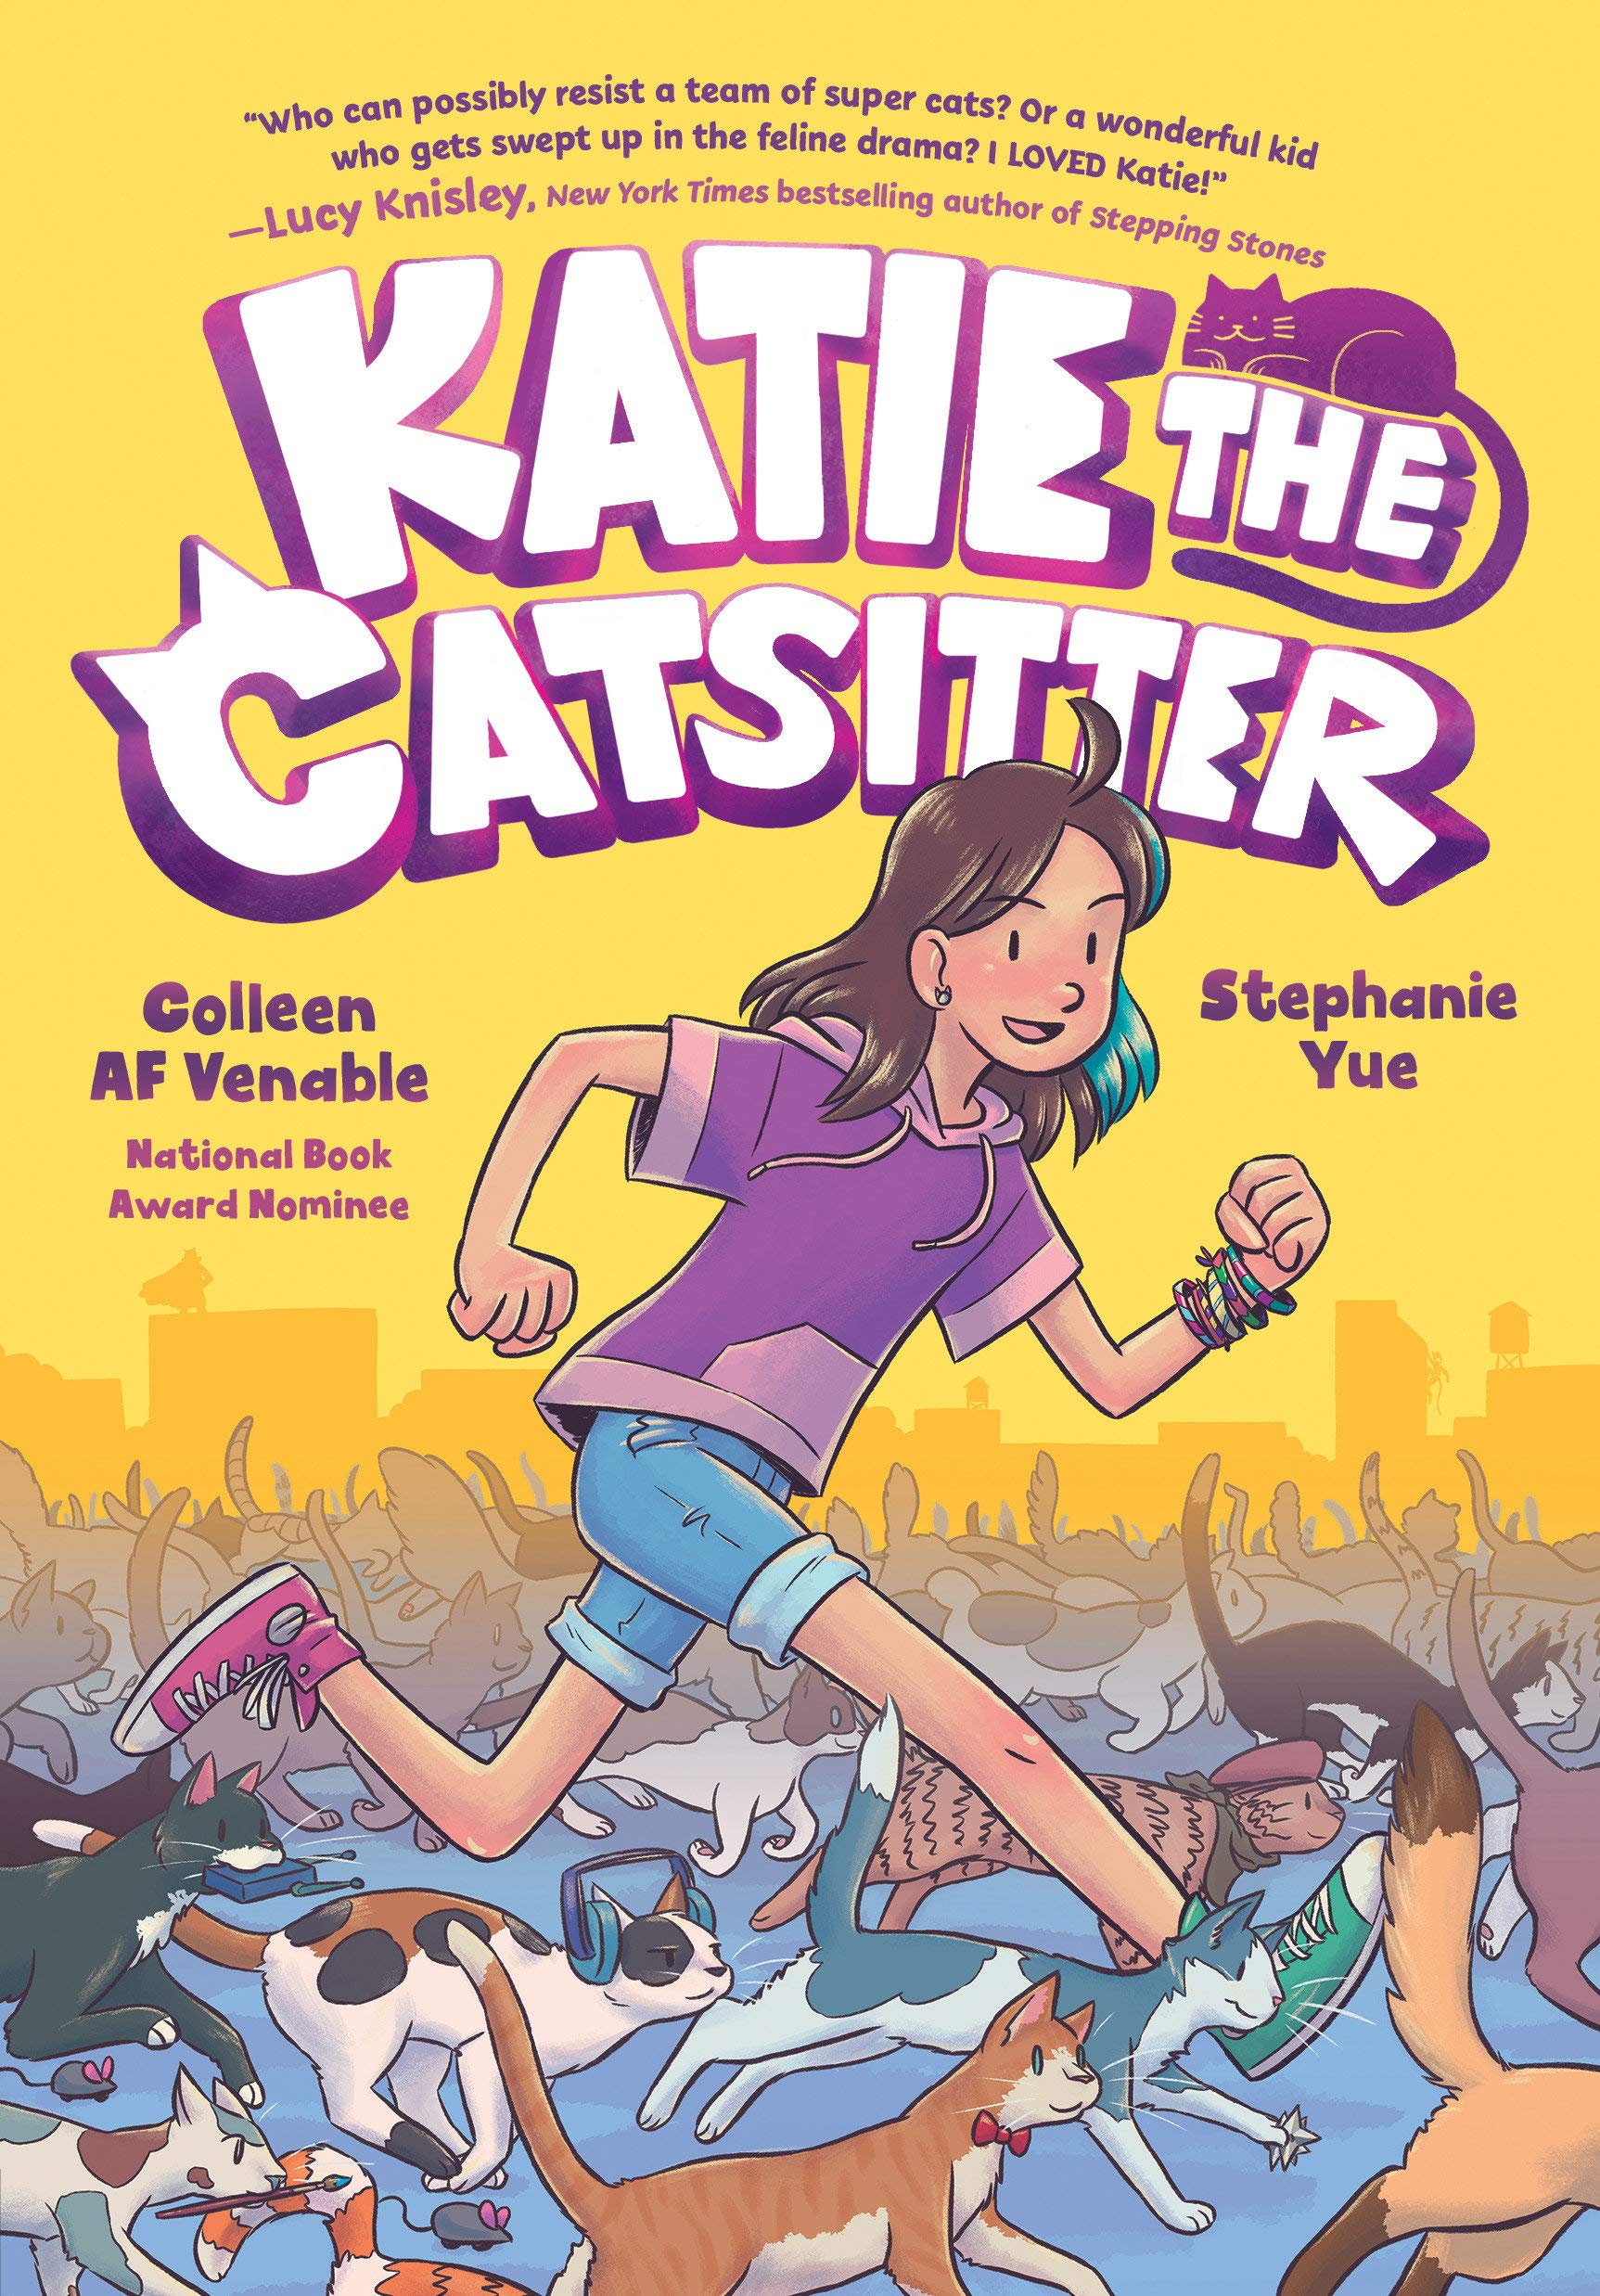 Amazing 2021 Books for Students: Katie the Catsitter